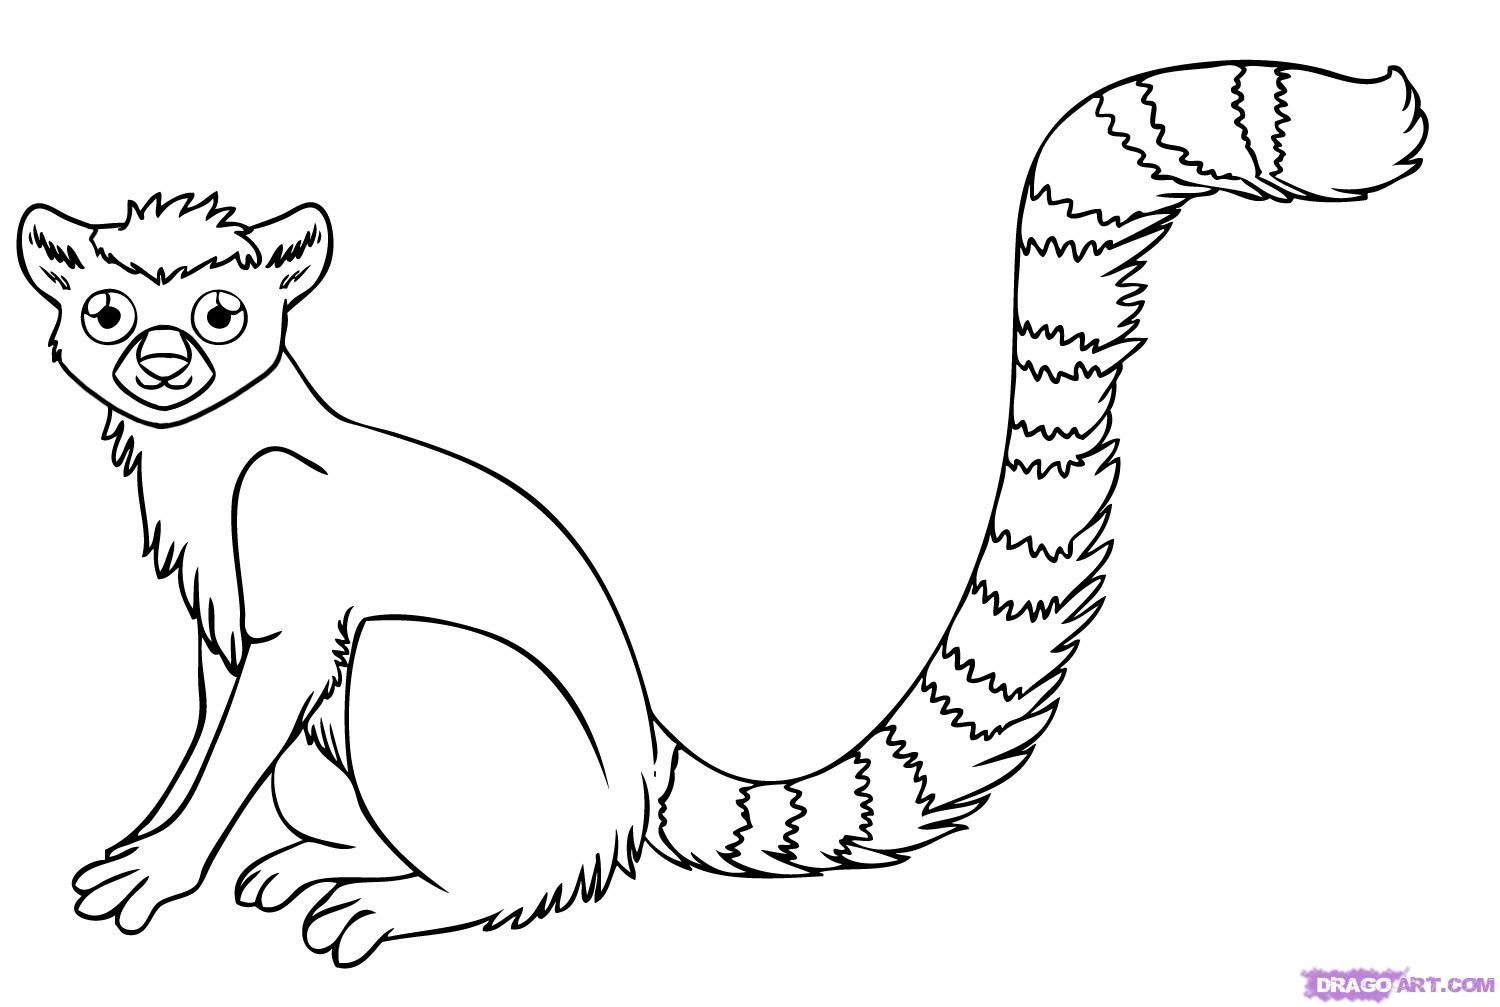 black and white forest animals coloring pages | Step 7. How to Draw a Lemur | Kinfolk | Rainforest animals ...